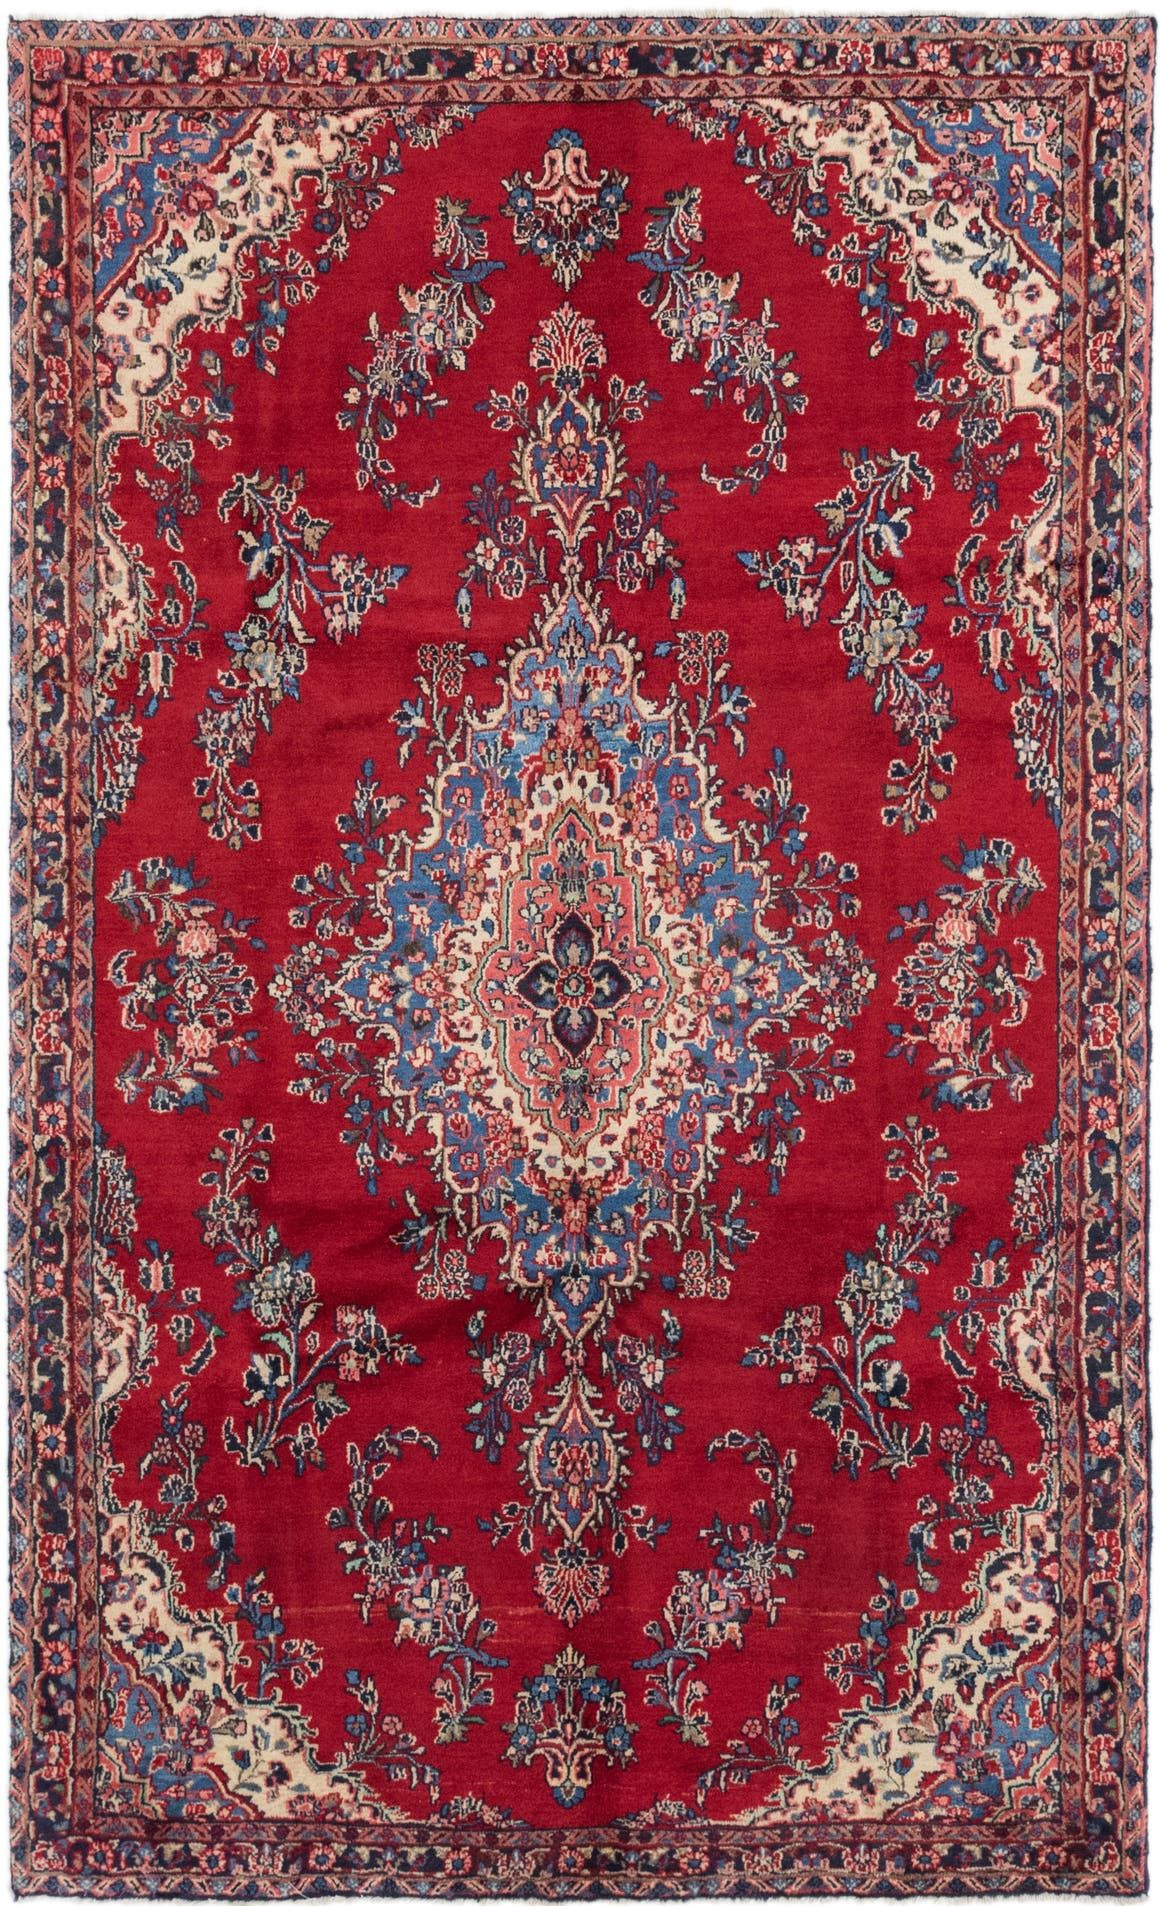 Shahrbaft Navy Blue Antique 7x10 Area Rug In 2020 Persian Rug Rugs Antique Persian Rug